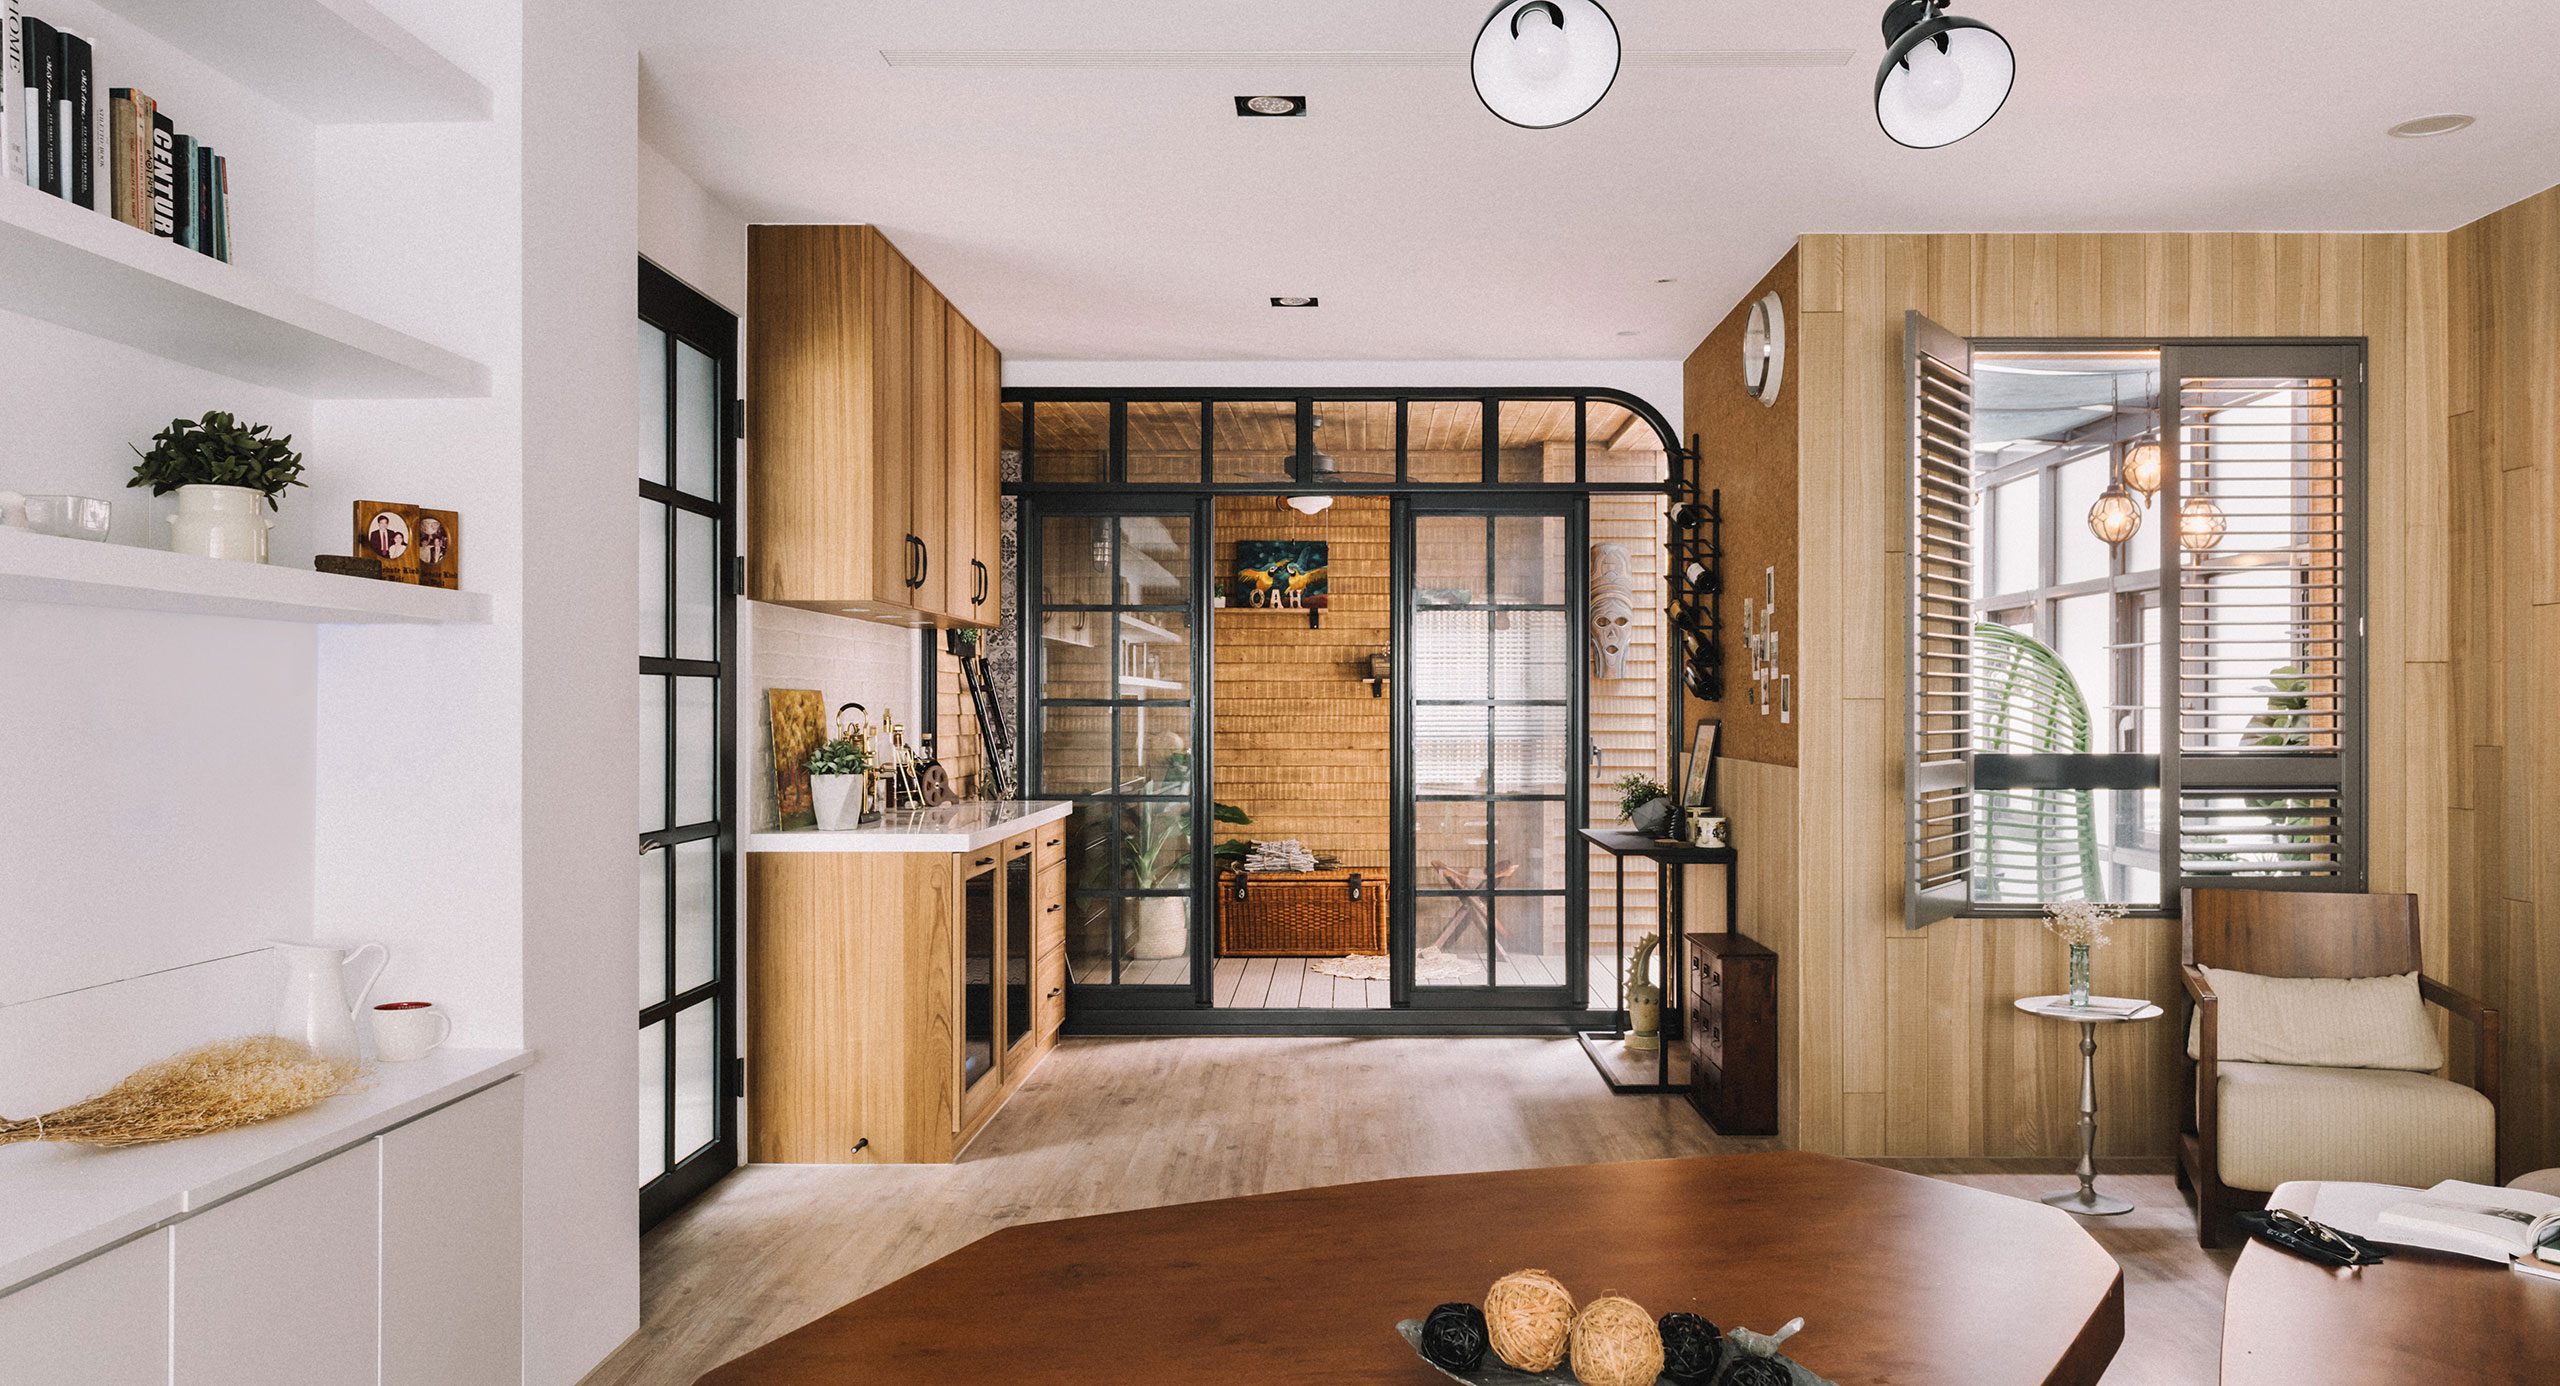 You Will Love the Vintage Stools in this This Taiwan Flat!